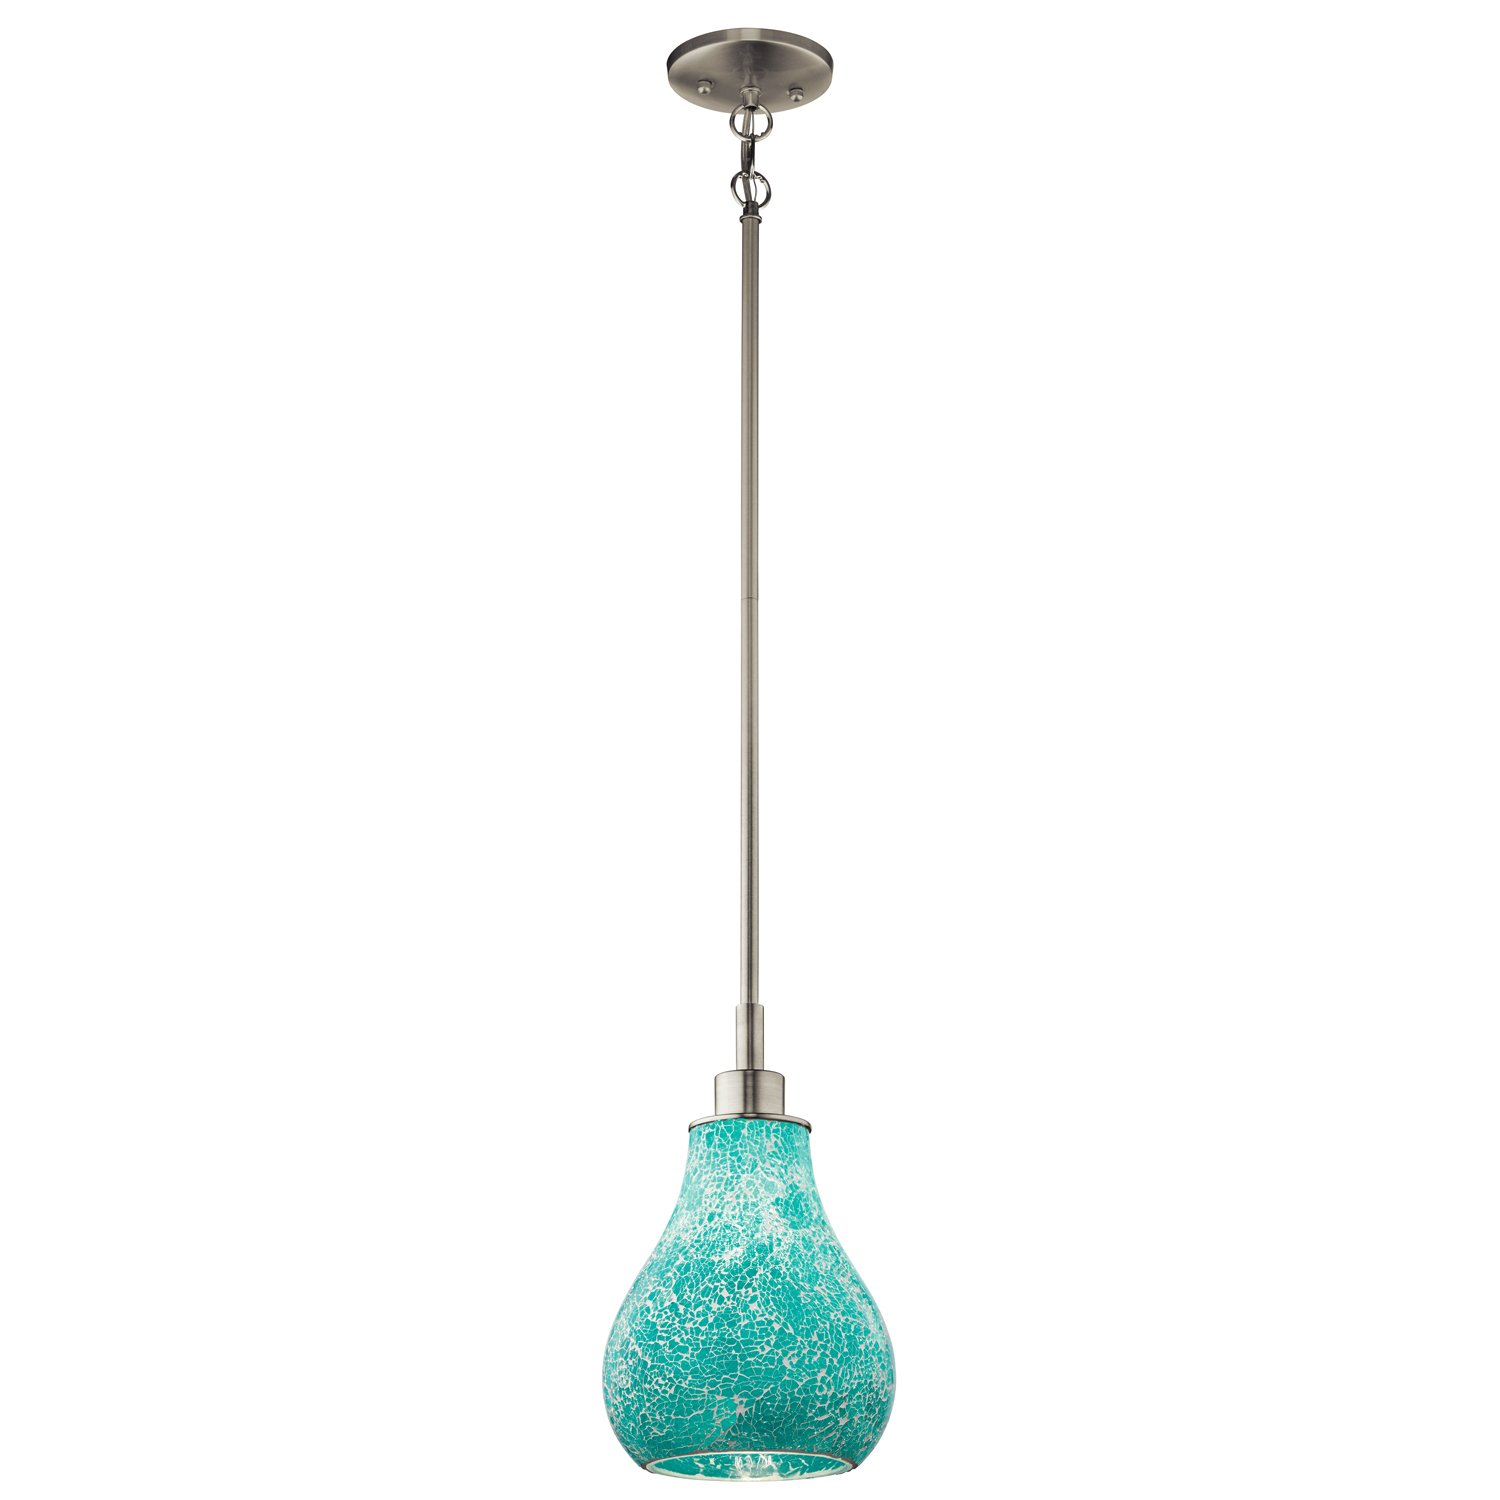 large resp odiham laura lighting ashley view uk sphere all nickel pendant light invt